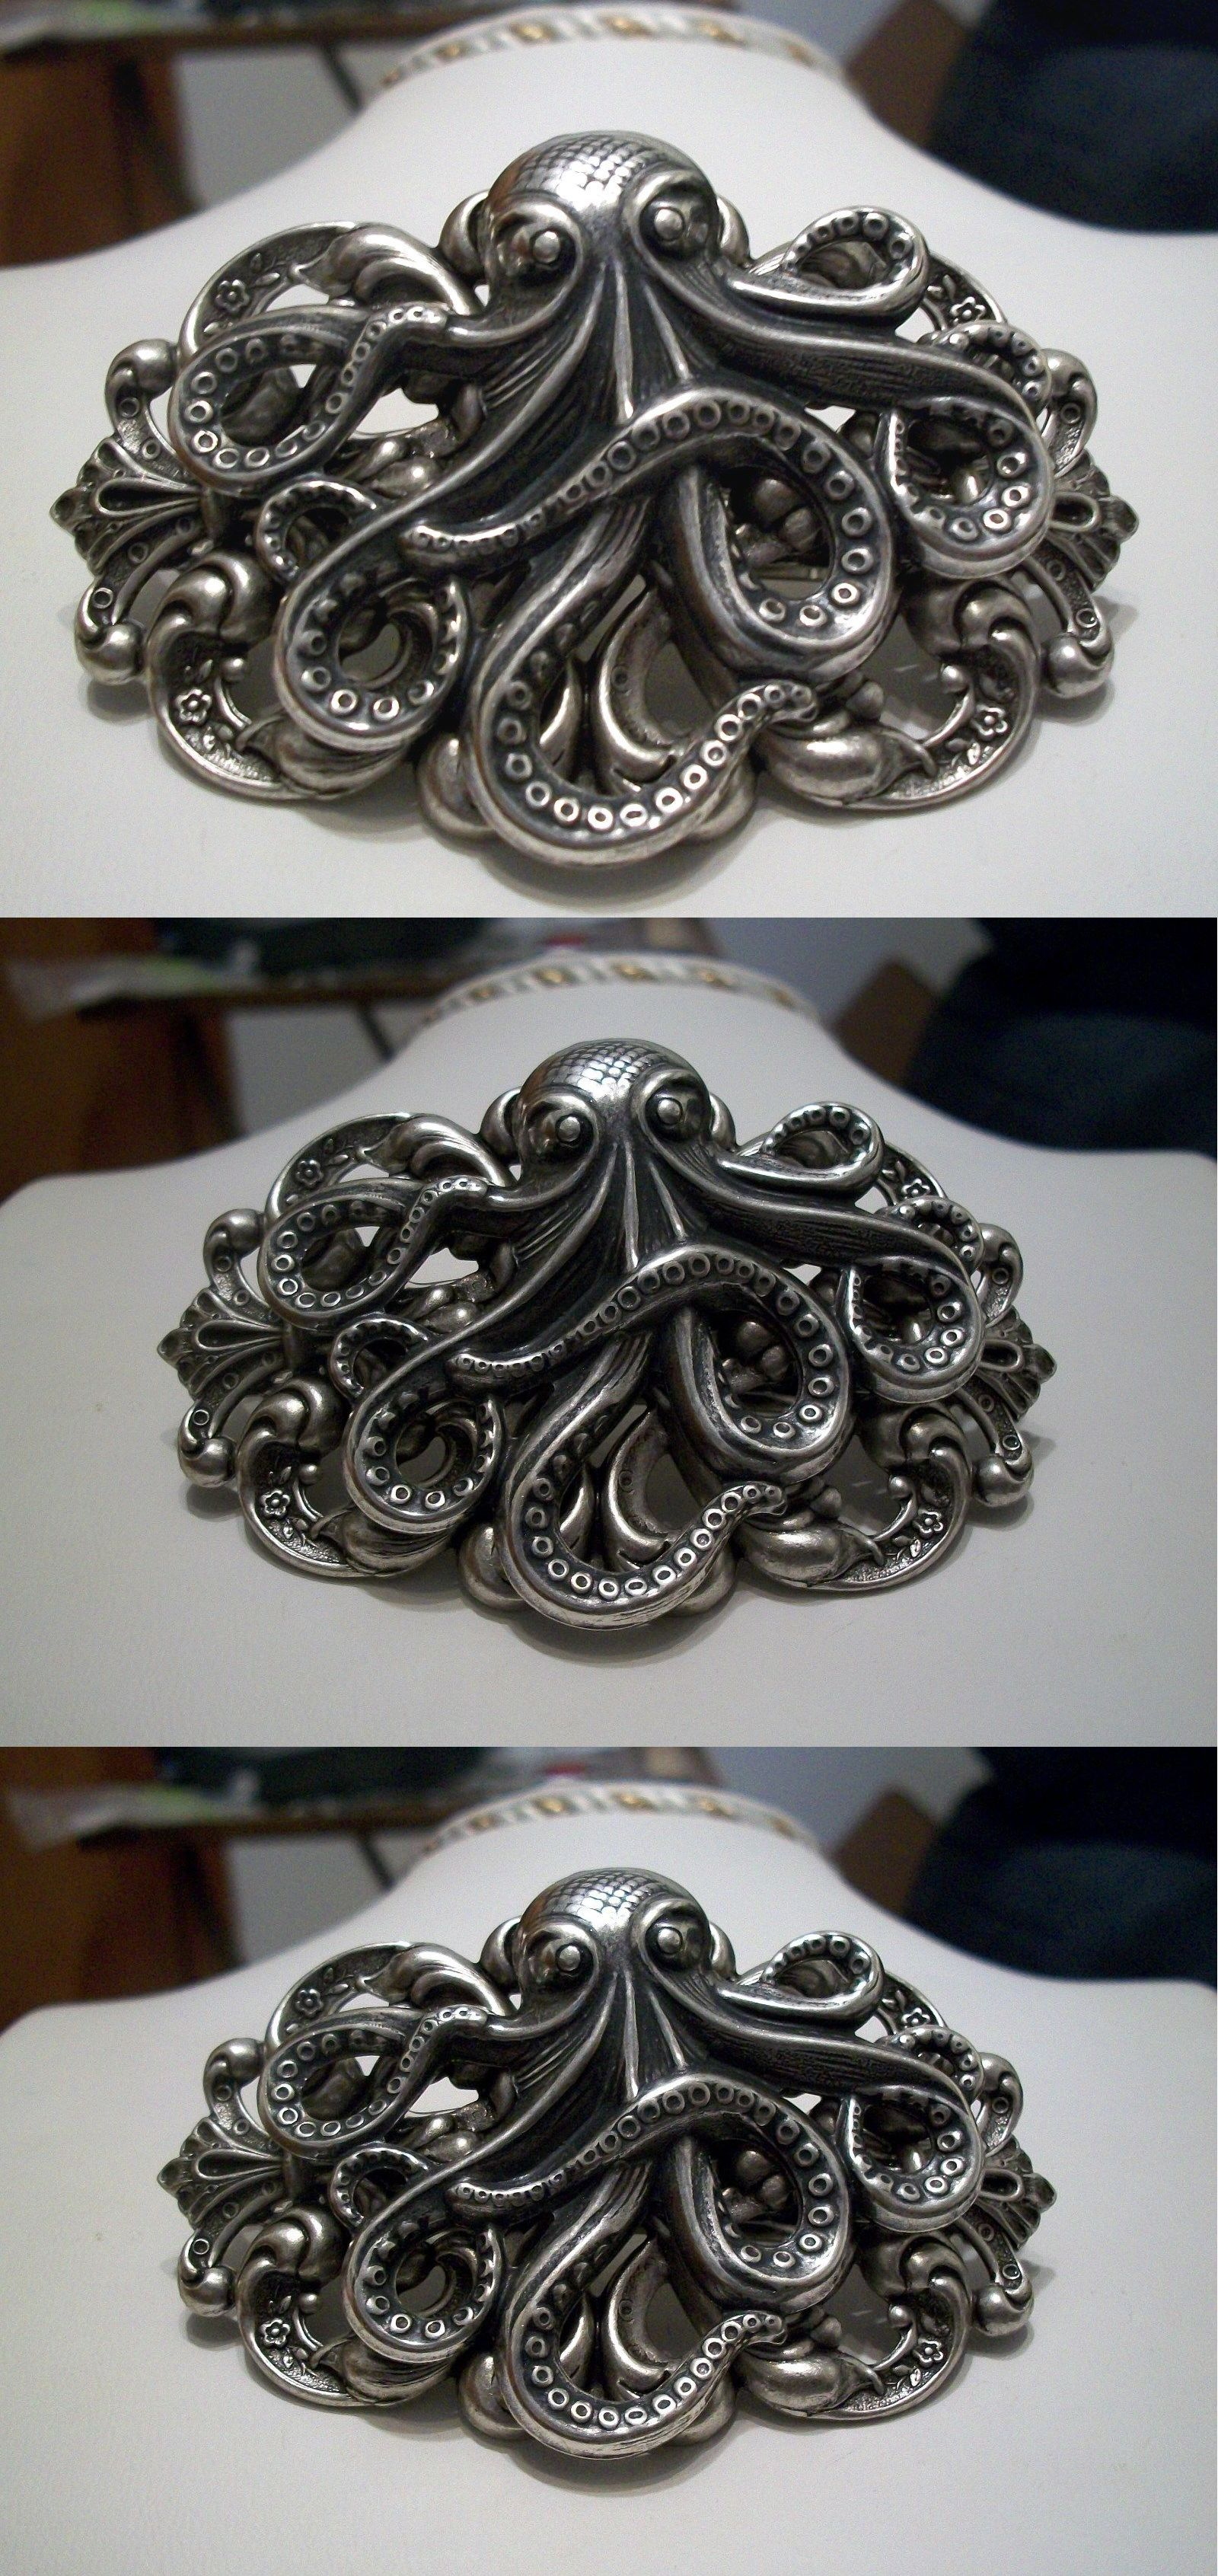 Pins and Brooches 50677: Sterling Silver Pltd Octopus Kraken Cthulhu Steampunk Lrg Pirate Hat Pin Brooch -> BUY IT NOW ONLY: $38.95 on eBay!